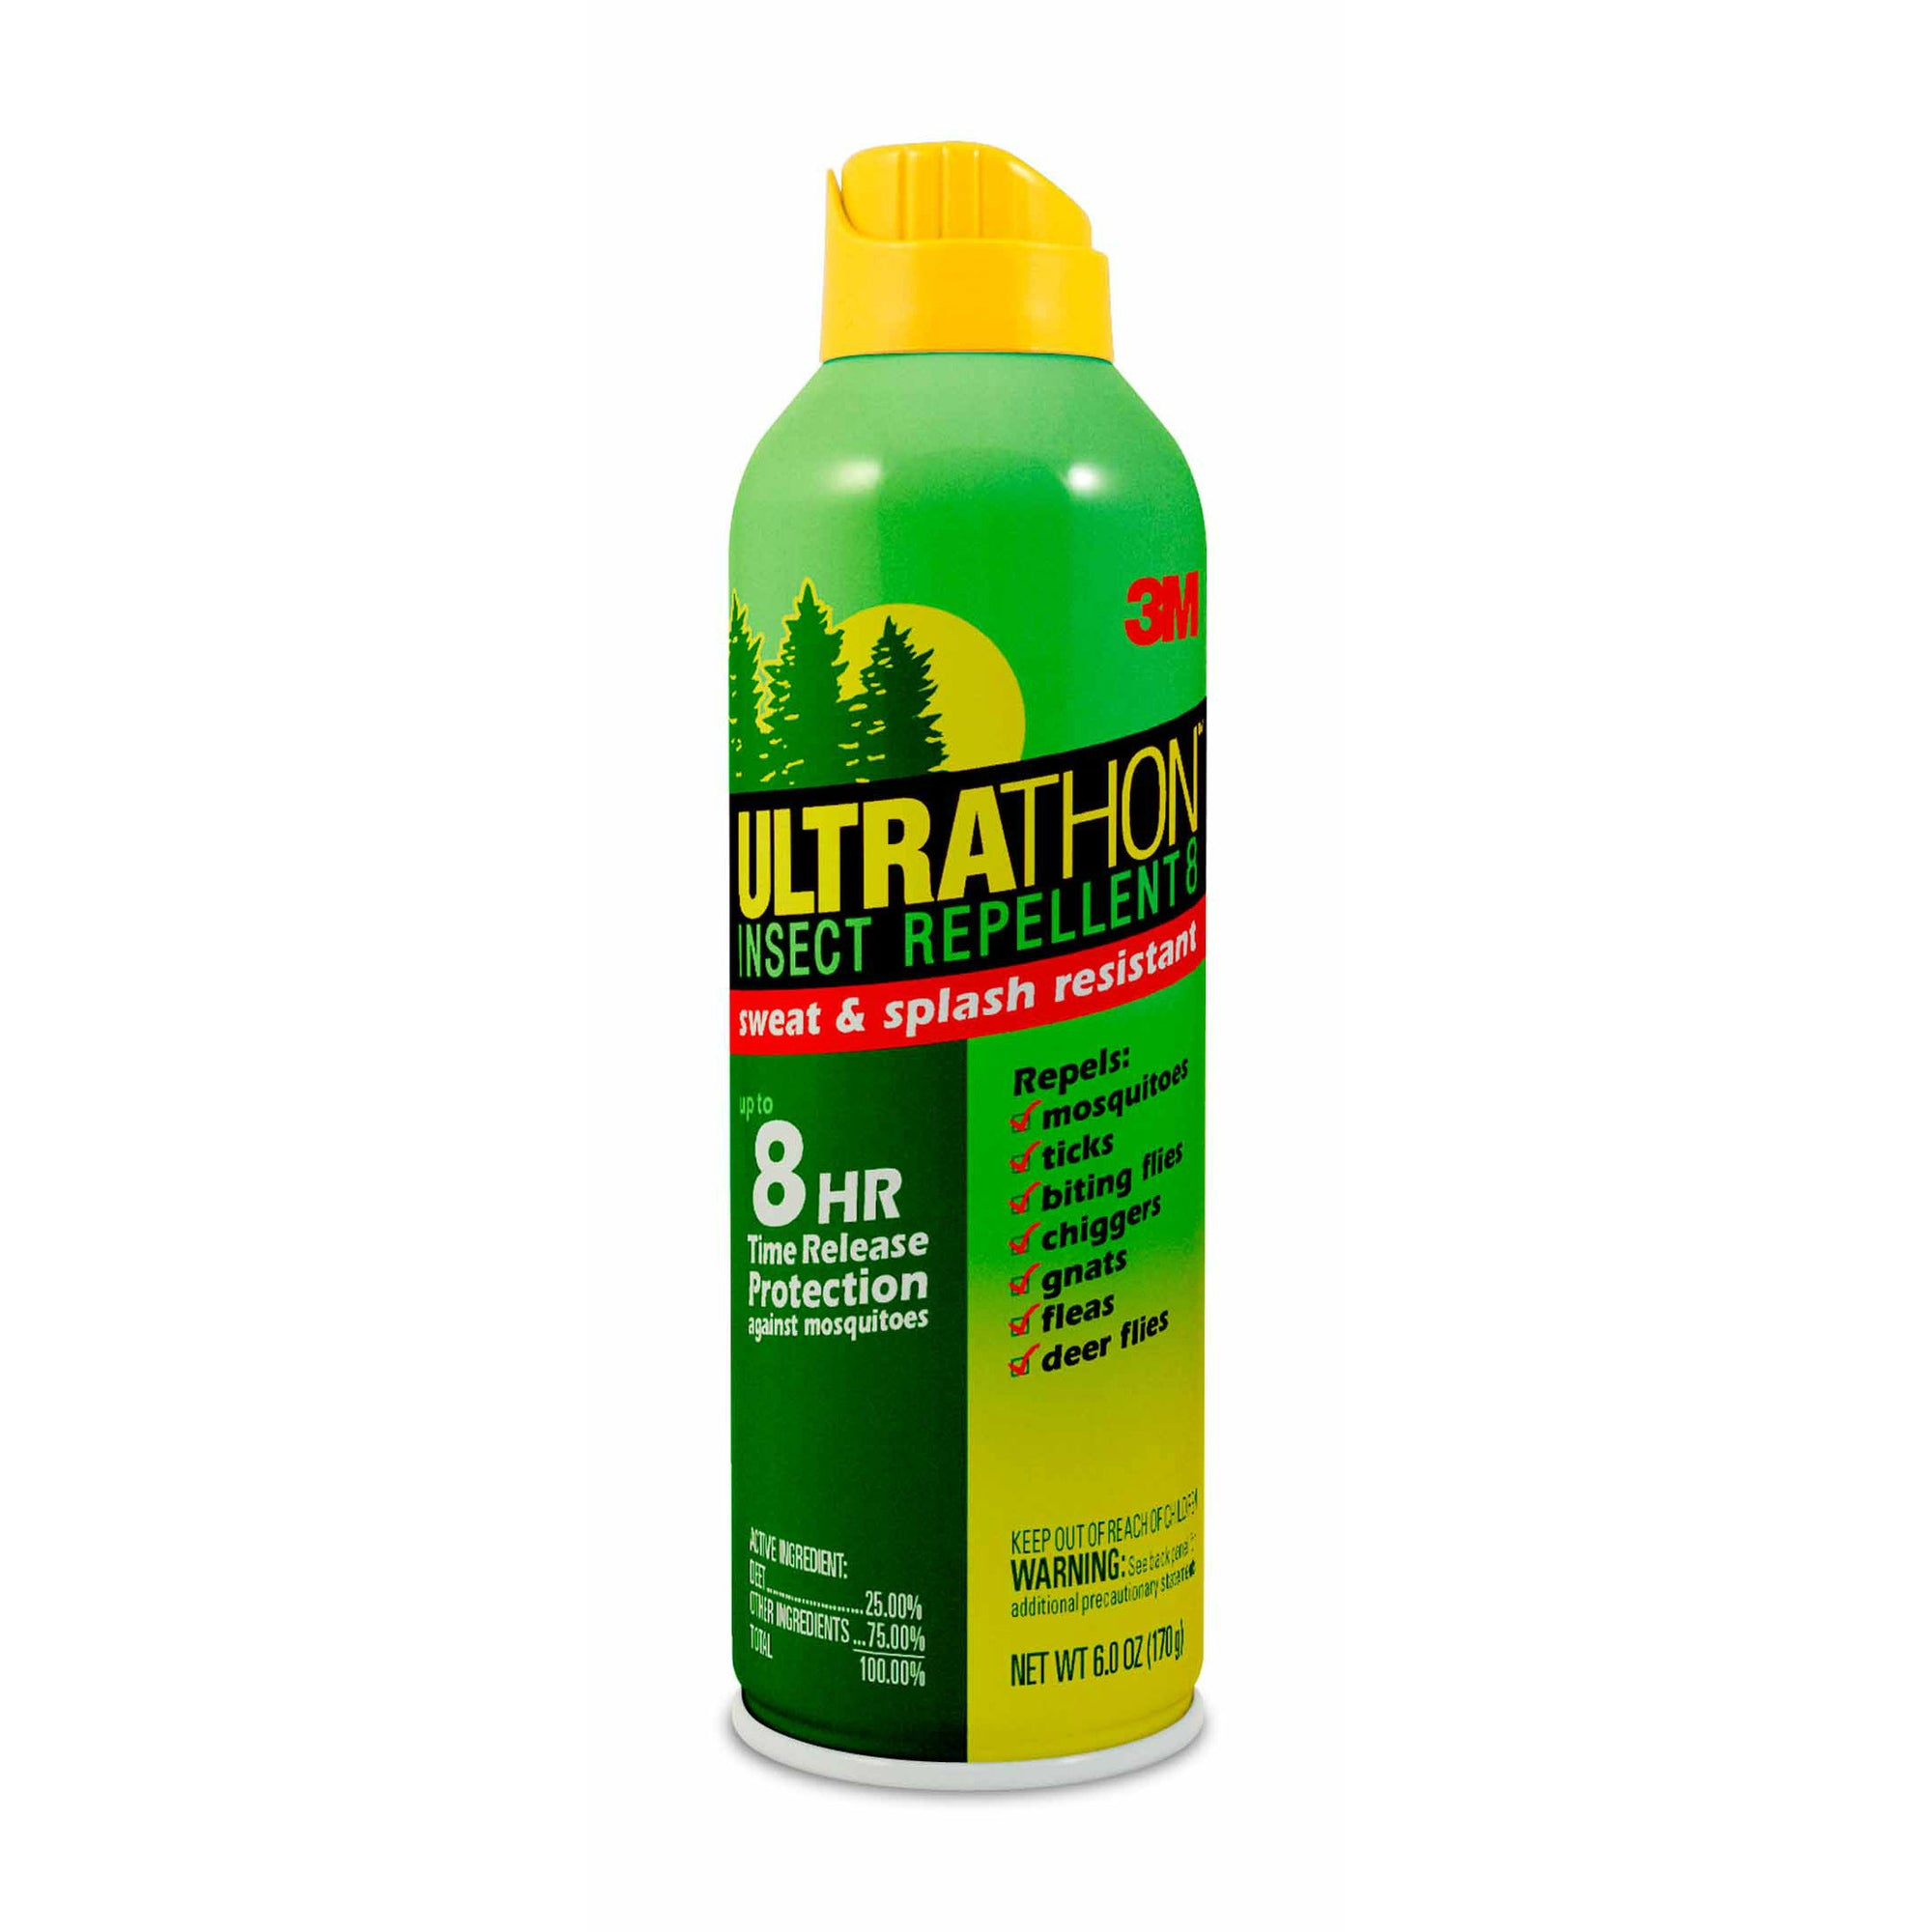 3M Ultrathon Insect Repellent Spray 25% Deet 6 oz. - Indy Army Navy